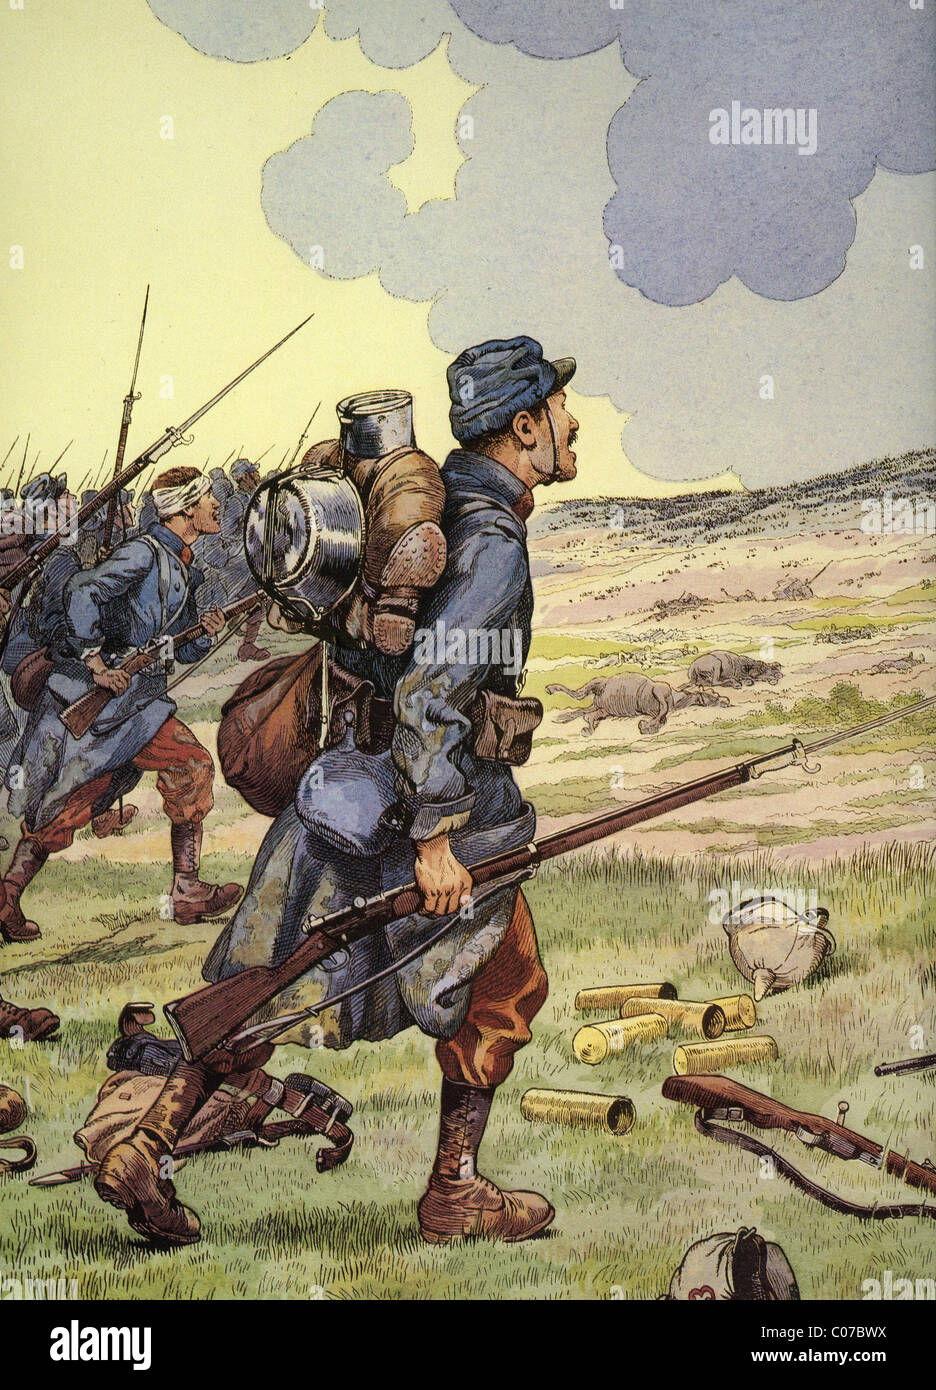 JOB (Jacques Onfroy de Breville) - French illustrator (1858 - 1931) First World War - 1914-1918: French Infantryman - Stock Image